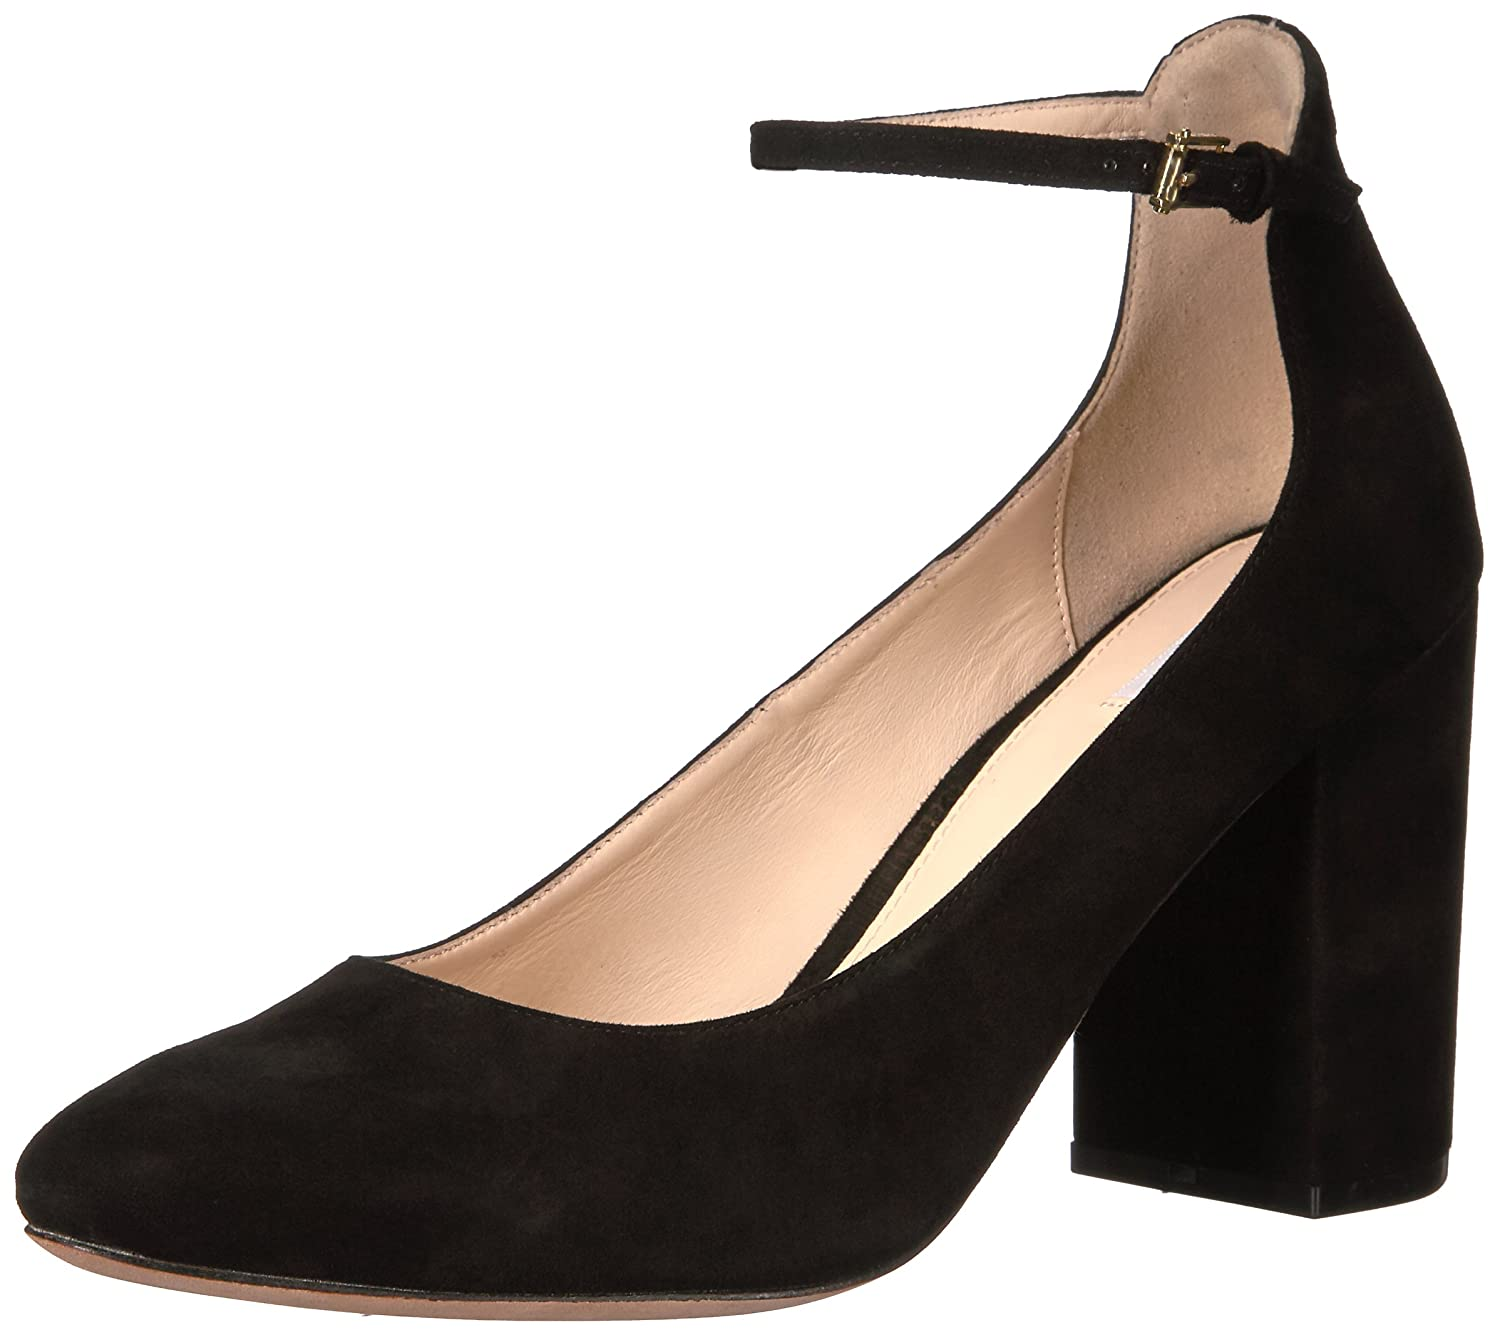 Cole Haan Women's Larue Grand Pump 85MM B06W9NWQ1B 6 B(M) US|Black Suede